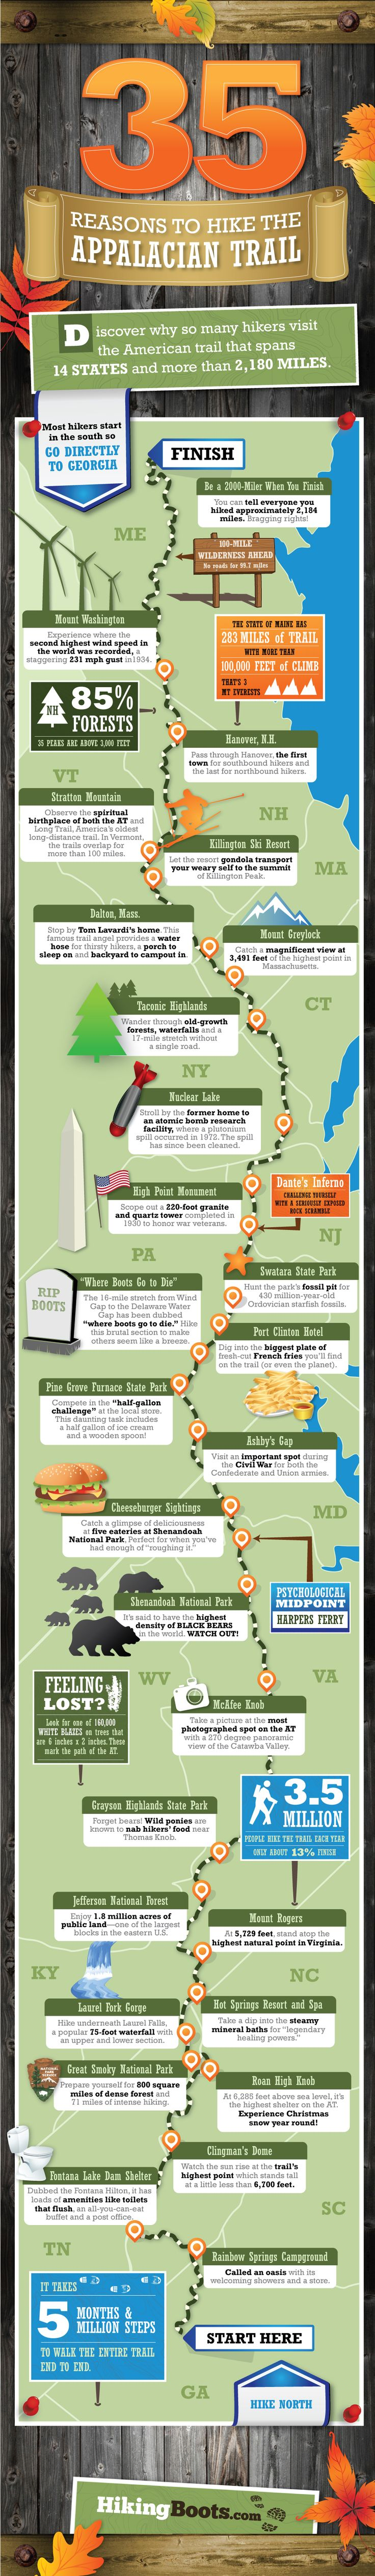 35 Reasons to Hike the Appalachian Trail It takes 5 months and 5 million steps to complete the A.T. Yearly 3.5 millions hike the trail but only about 13% finish it.